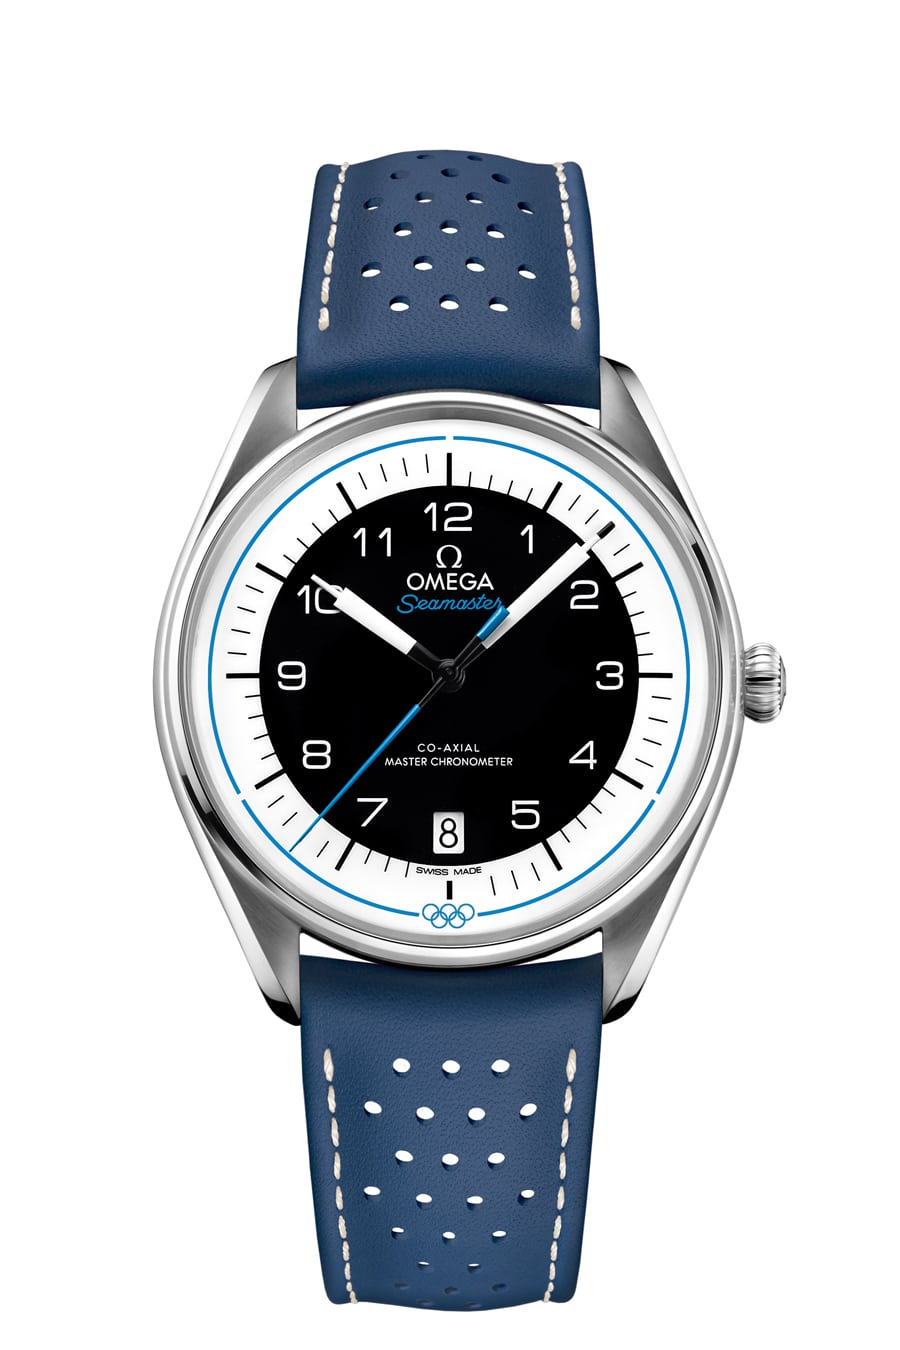 Omega Seamaster Olympic Games Collection in Blau (Referenz: 522.32.40.20.01.001)